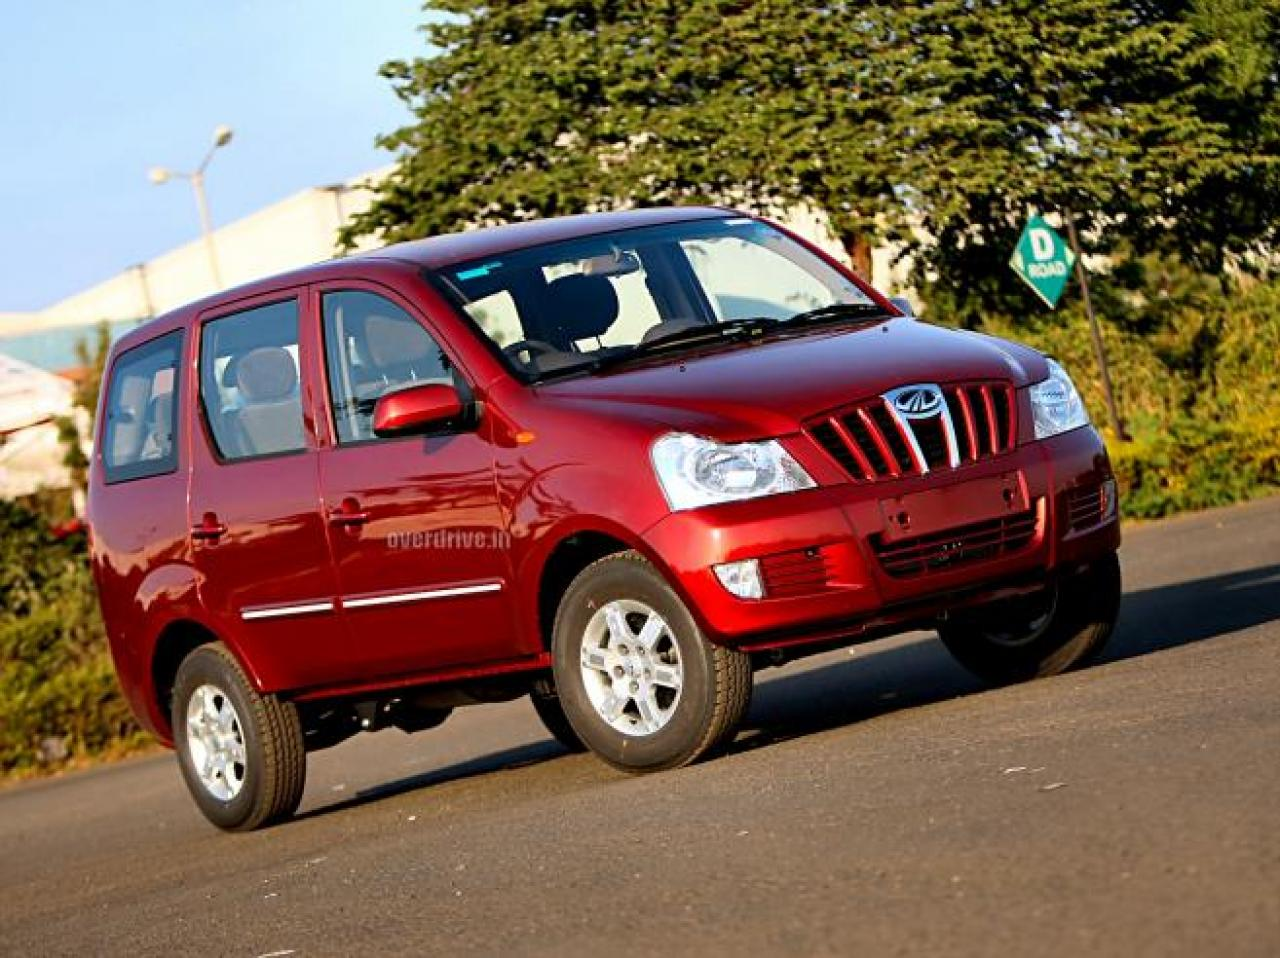 Diesel cars prices in india price under 10 lakhs and below 6 lakhs rupees